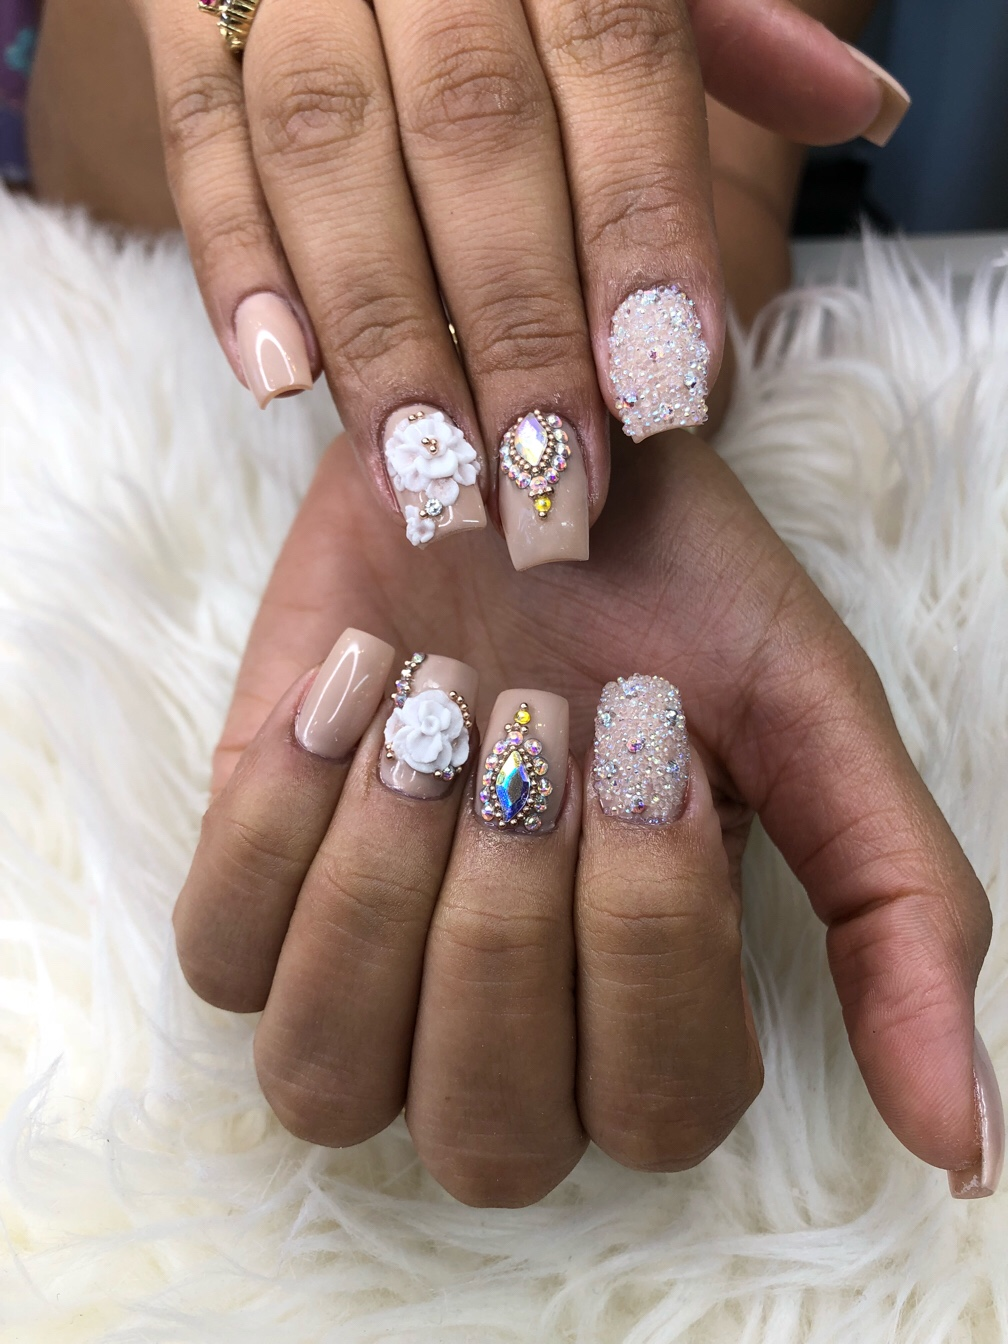 Schanelis Nails In East Rutherford Nj Vagaro